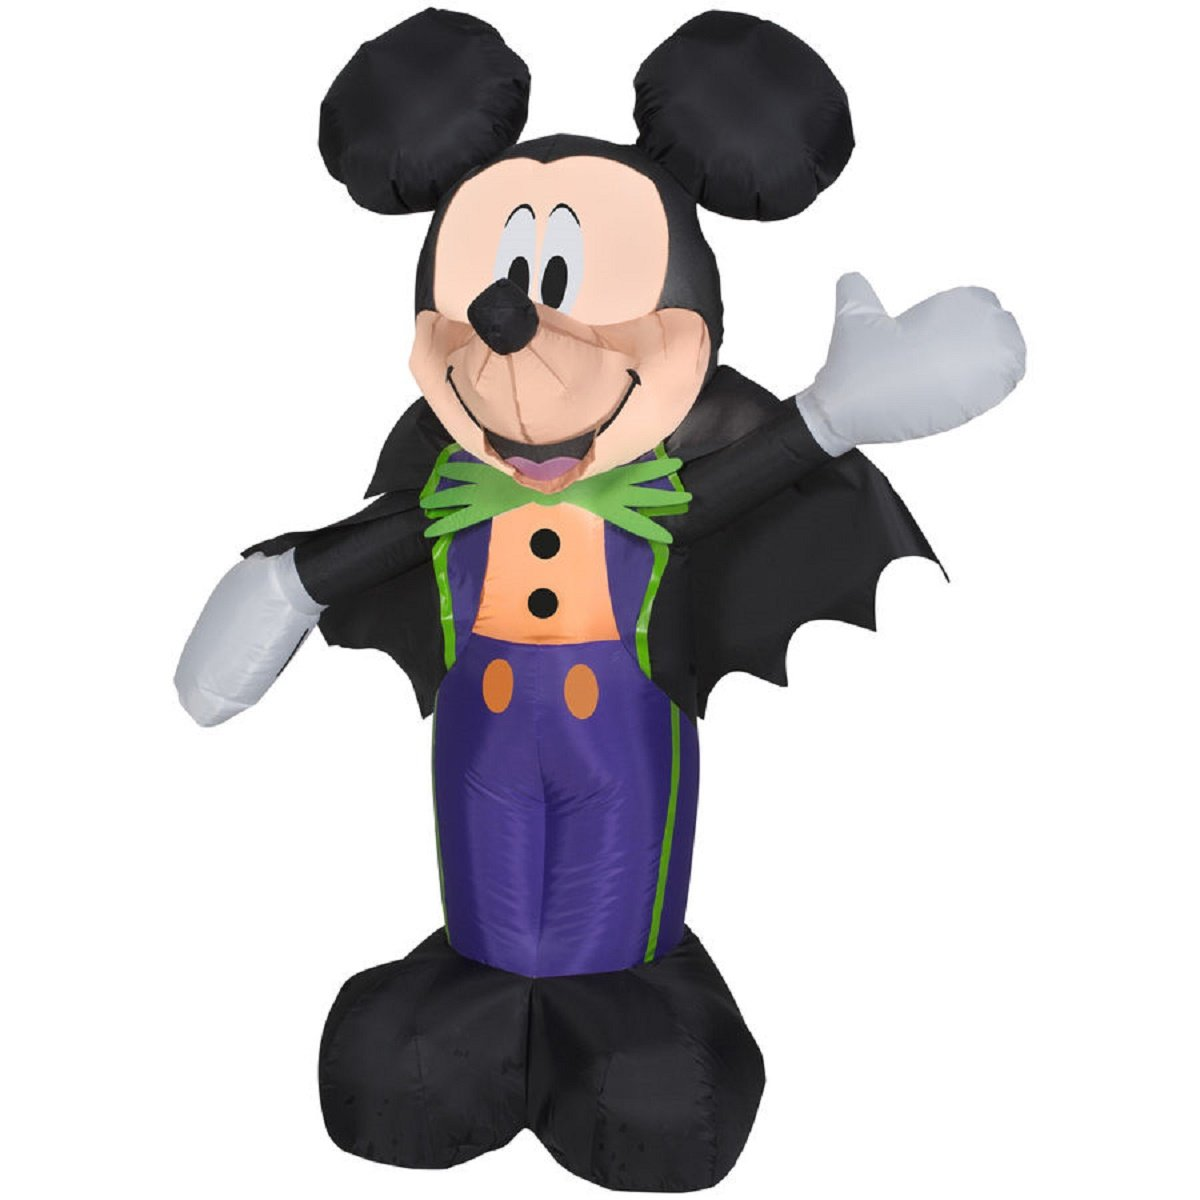 HALLOWEEN DISNEY INFLATABLE 3.5' COUNT MICKEY PROP DECORATION BY GEMMY